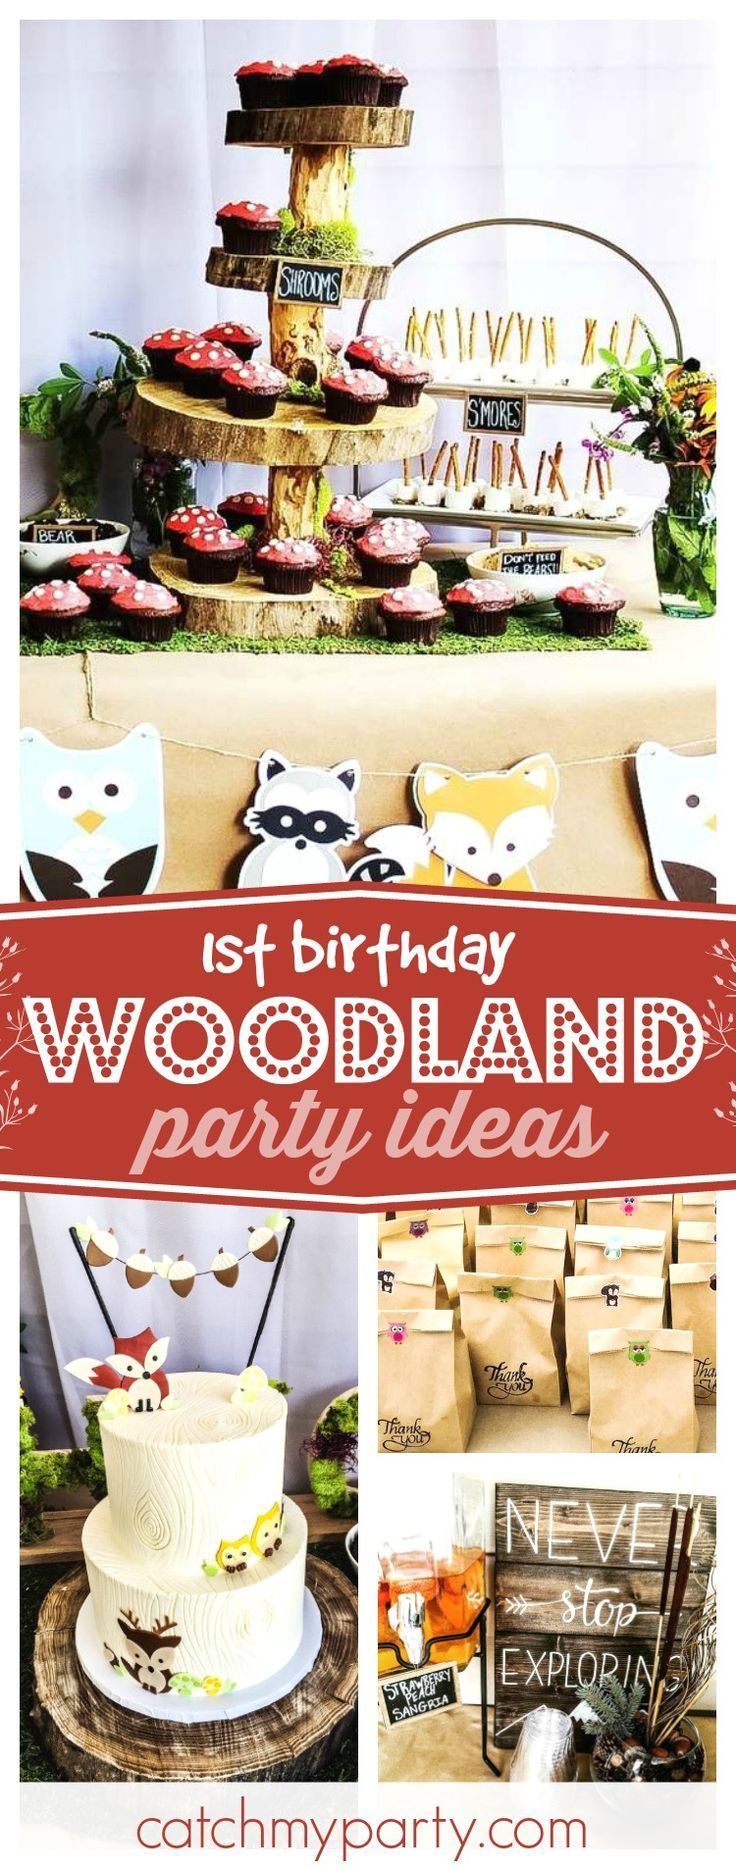 Check out this fun Woodland Wild One 1st birthday party! The cupcakes on  the log